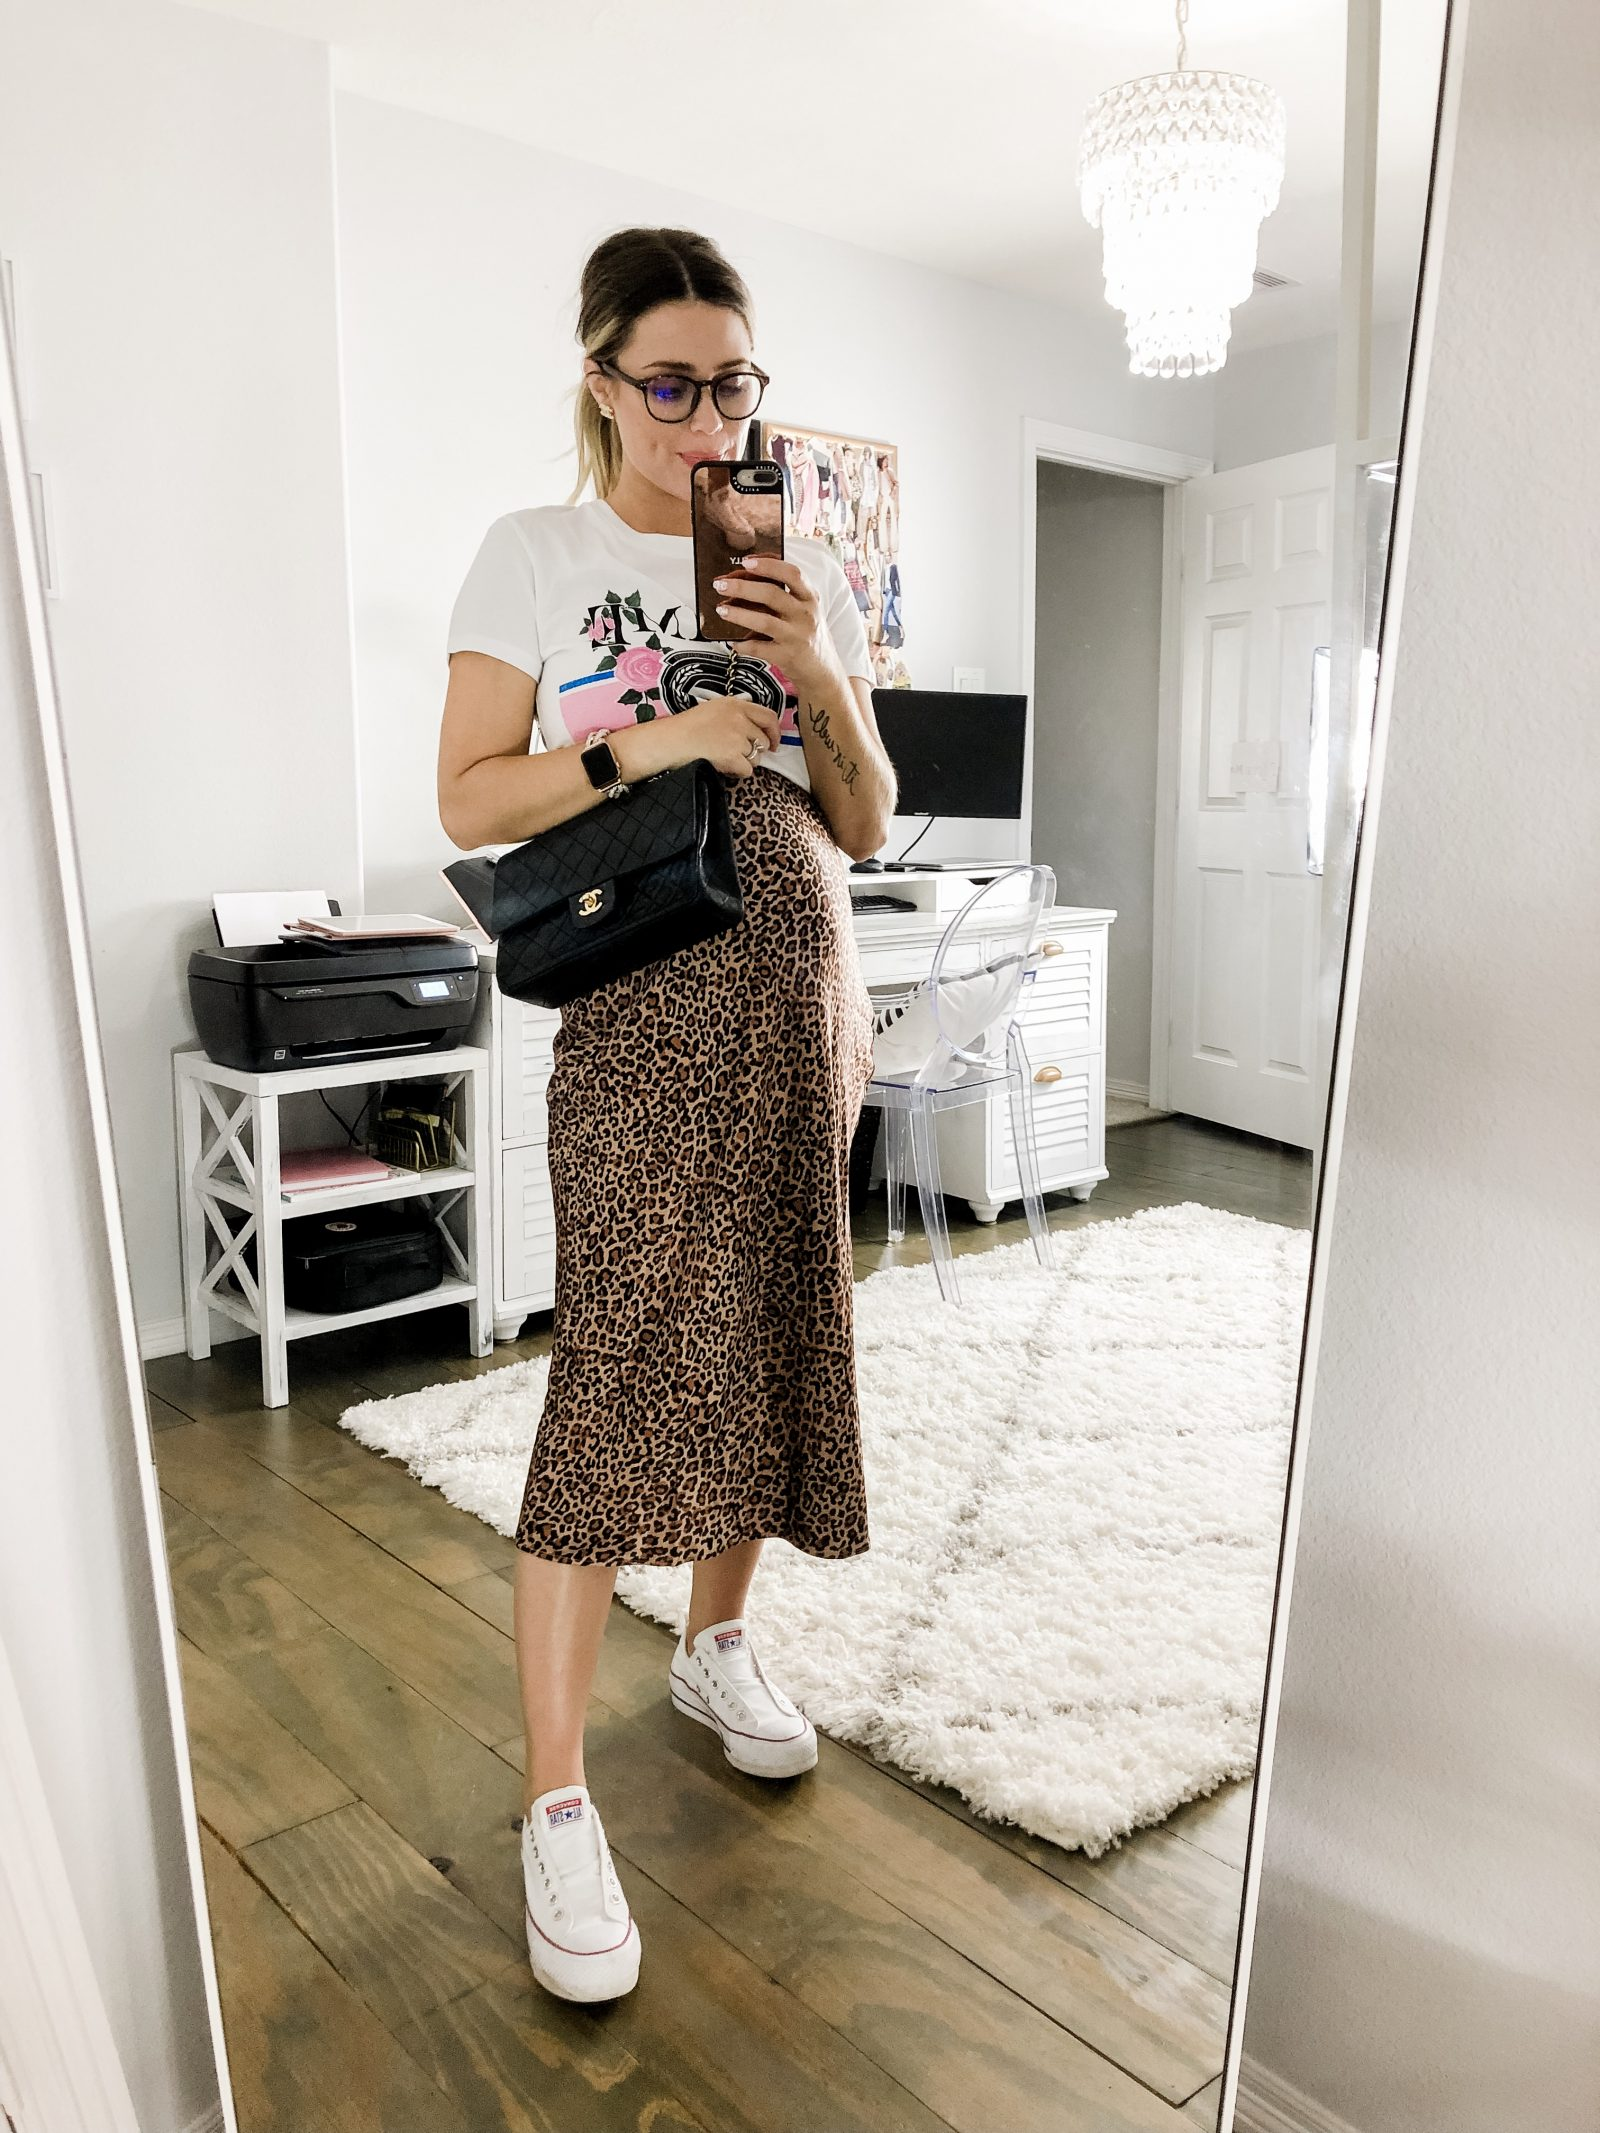 Houston fashion blogger Elly Brown wears her converse sneakers with a graphic tee and a leopard midi skirt